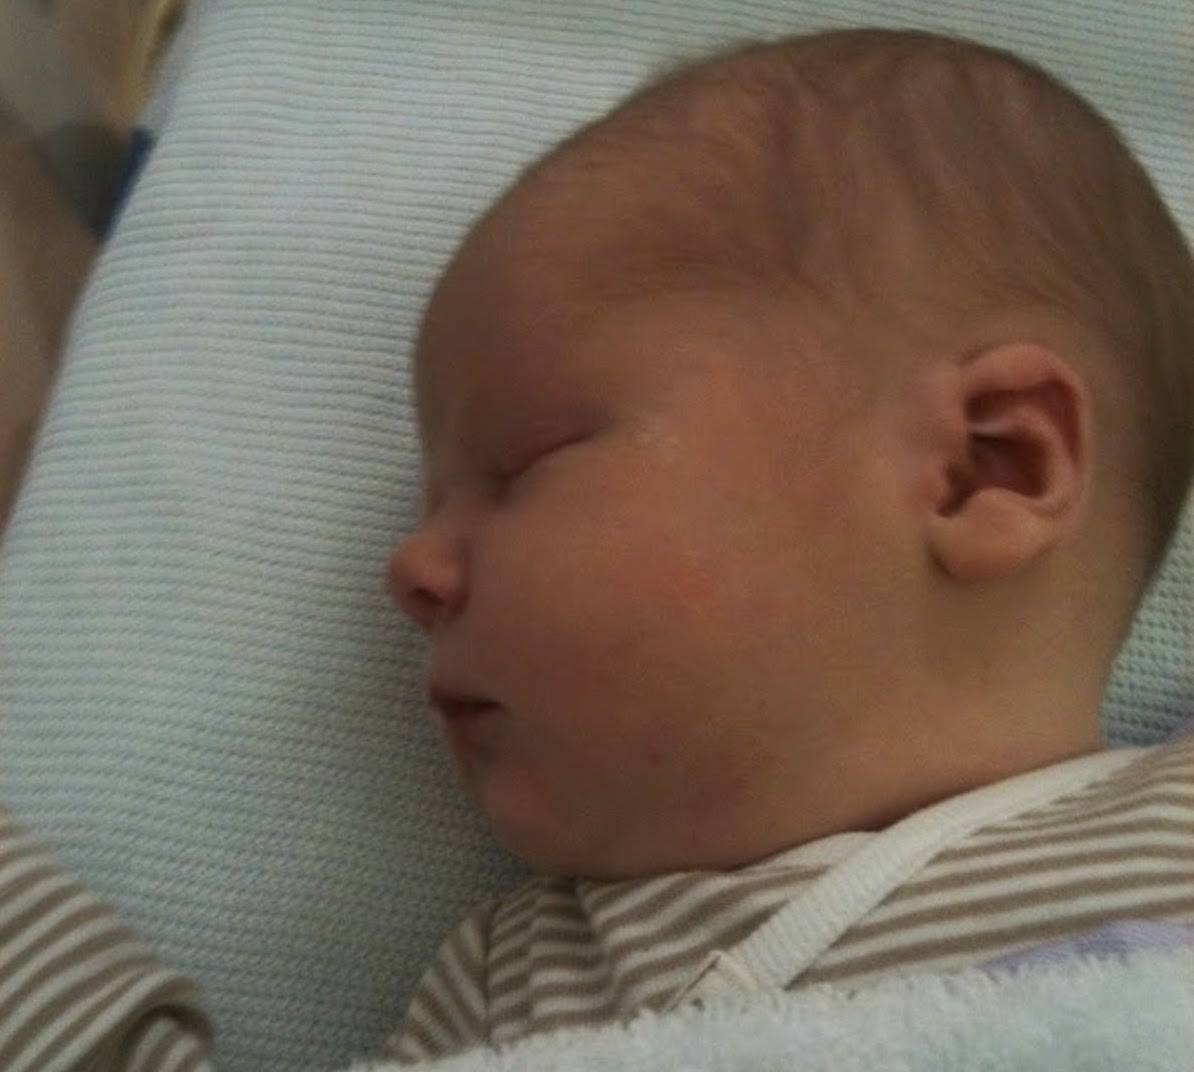 A baby asleep in a crib wearing a brown and white striped top